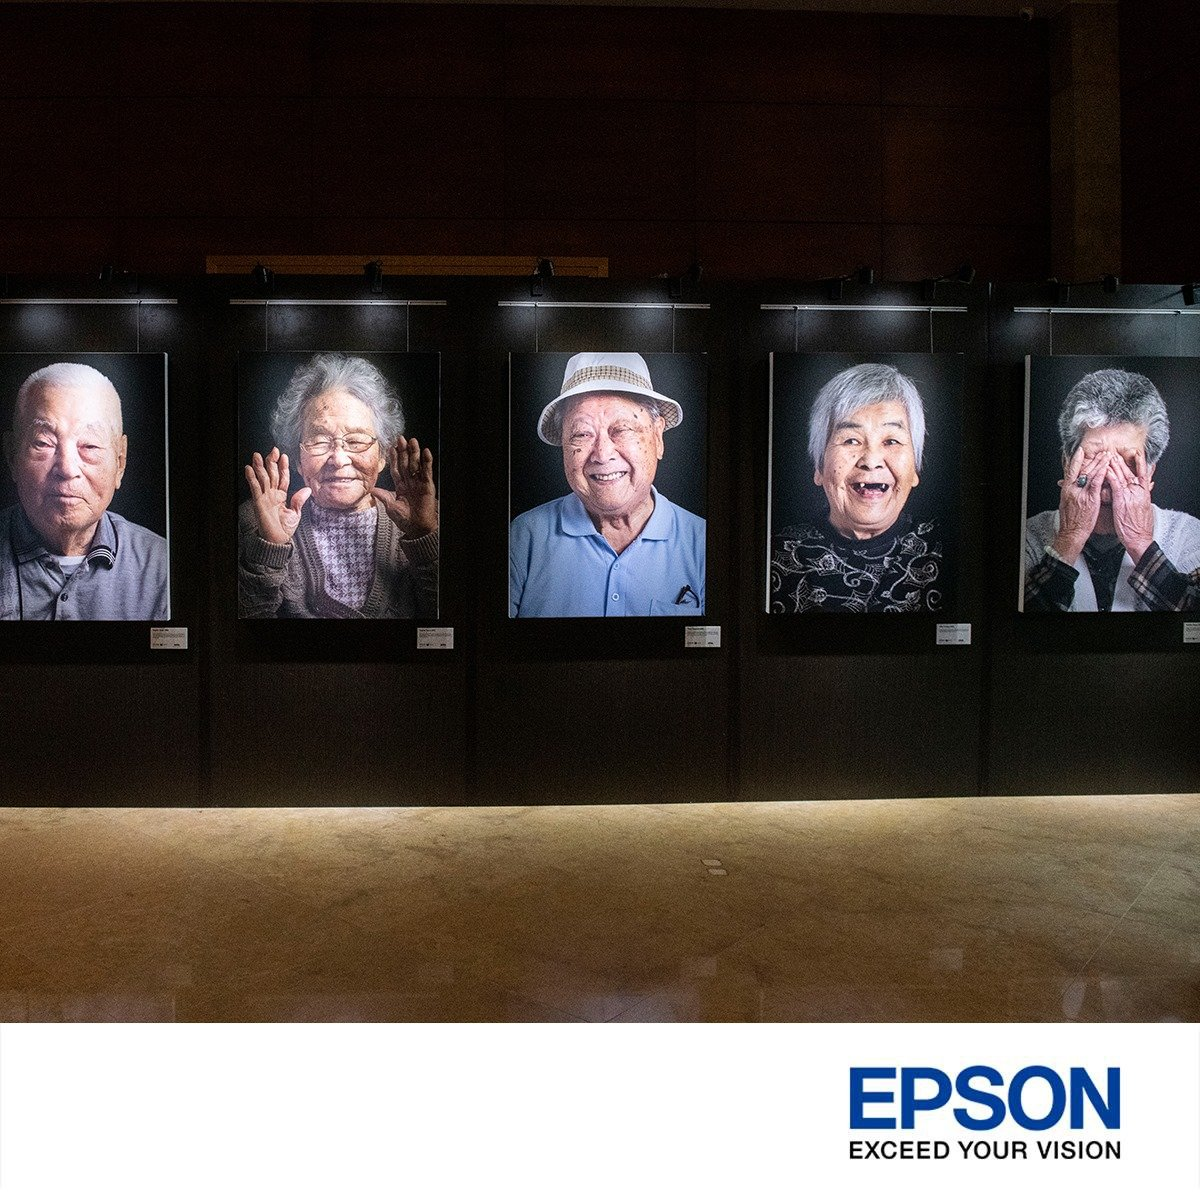 Fine Art Printing experience with Epson for my Photography Exhibition – Longevity Okinawa